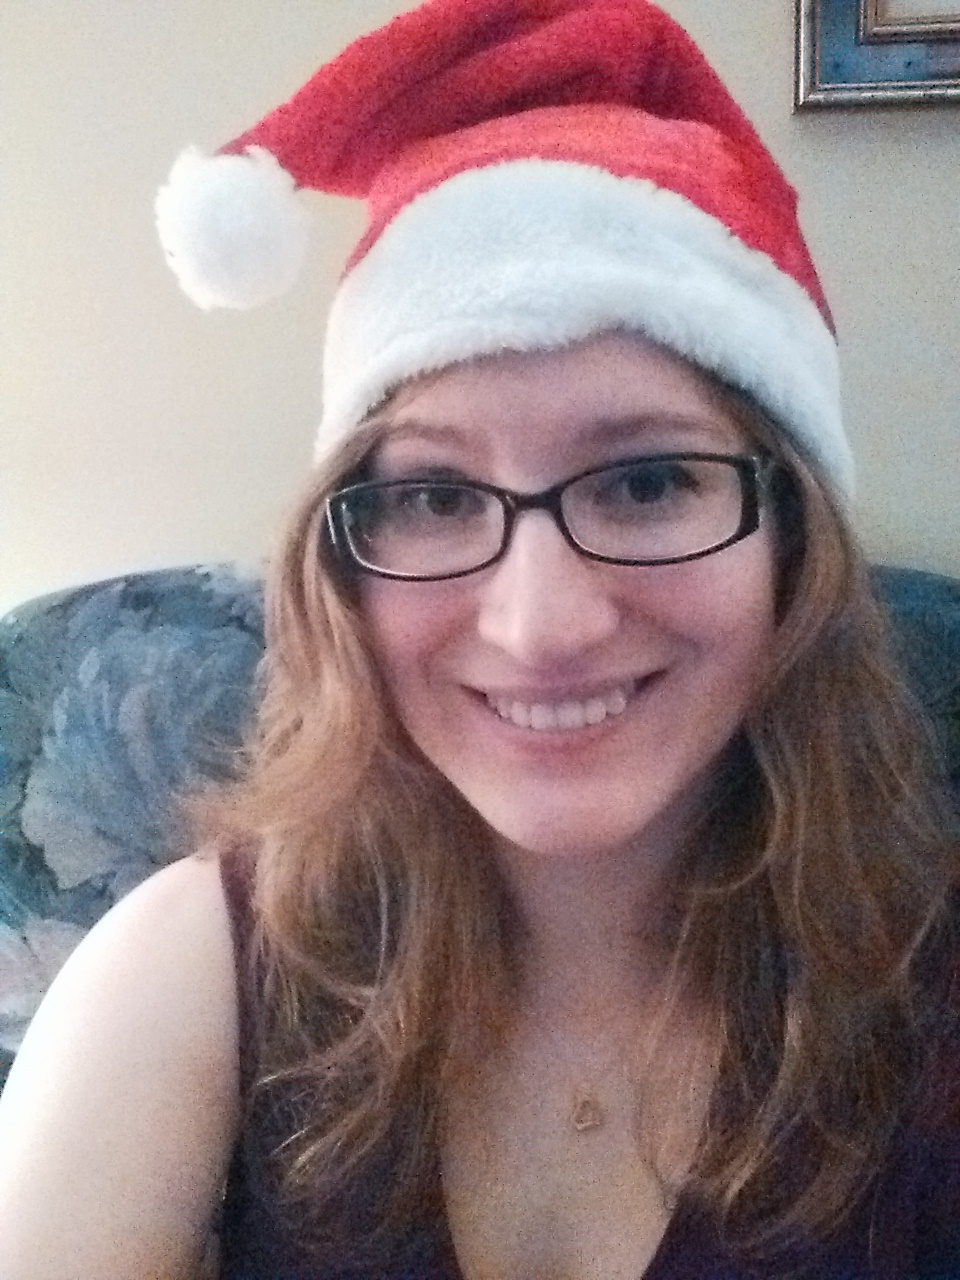 From this Shipster's home to yours, Happy Holidays!! - Wishing you all the best during the holiday season and into the New Year. I'm back on the mainland visiting my family, but will return to the blogosphere next week!Until next time!Heather